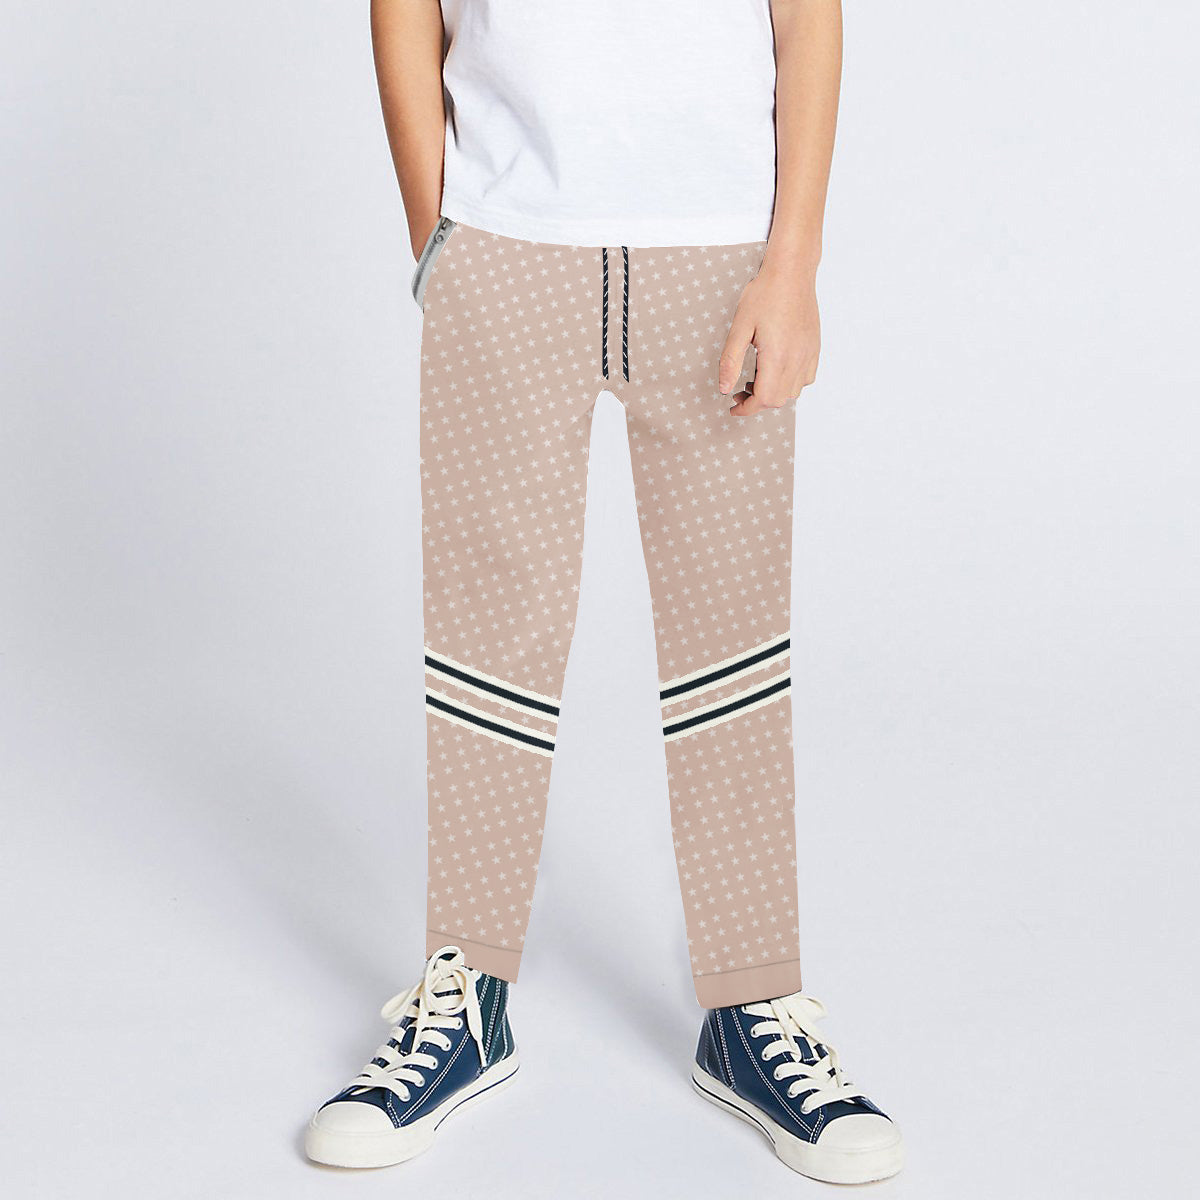 Next Slim Fit Jogger Trouser For Kids-Light Peach with All Over Star Print-SP2676